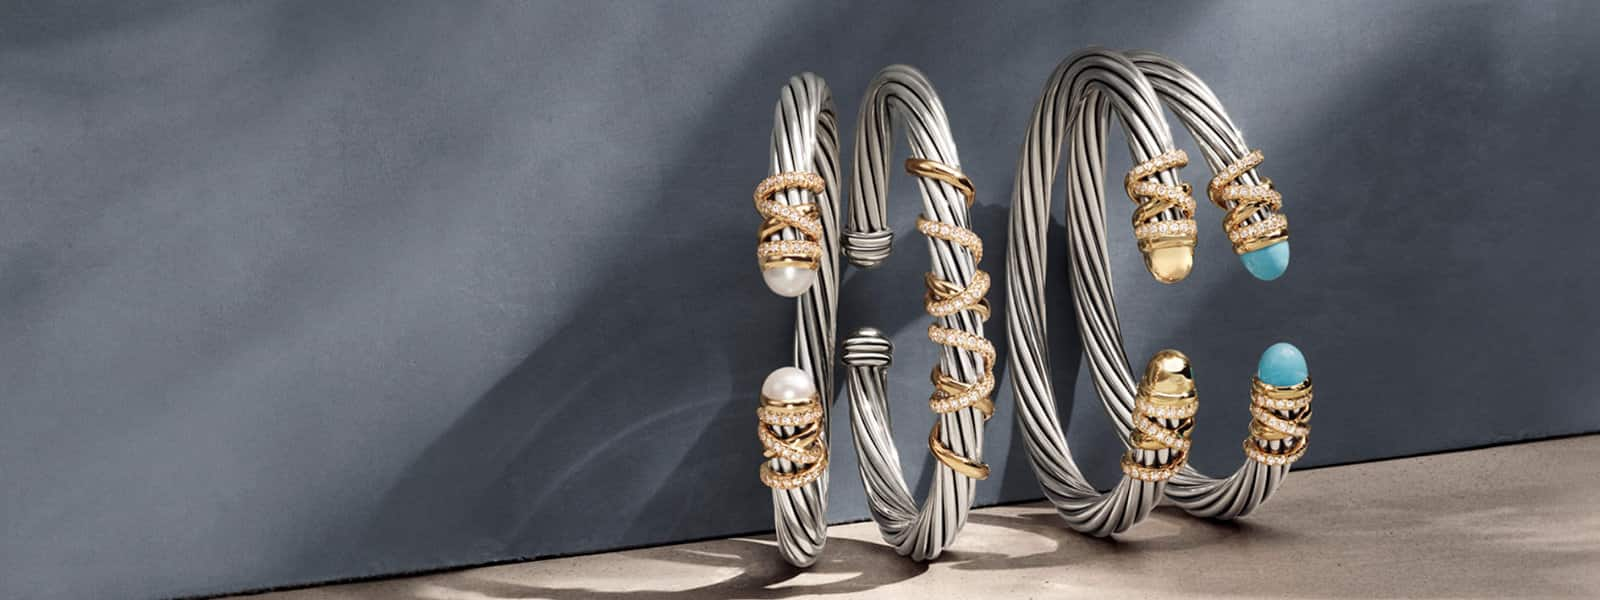 A horizontal stack of David Yurman Helena bracelets in sterling silver with 18K yellow gold with pavé white diamonds, cultured pearls, gold domes and turquoise standing on a beige textured stone with long shadows.